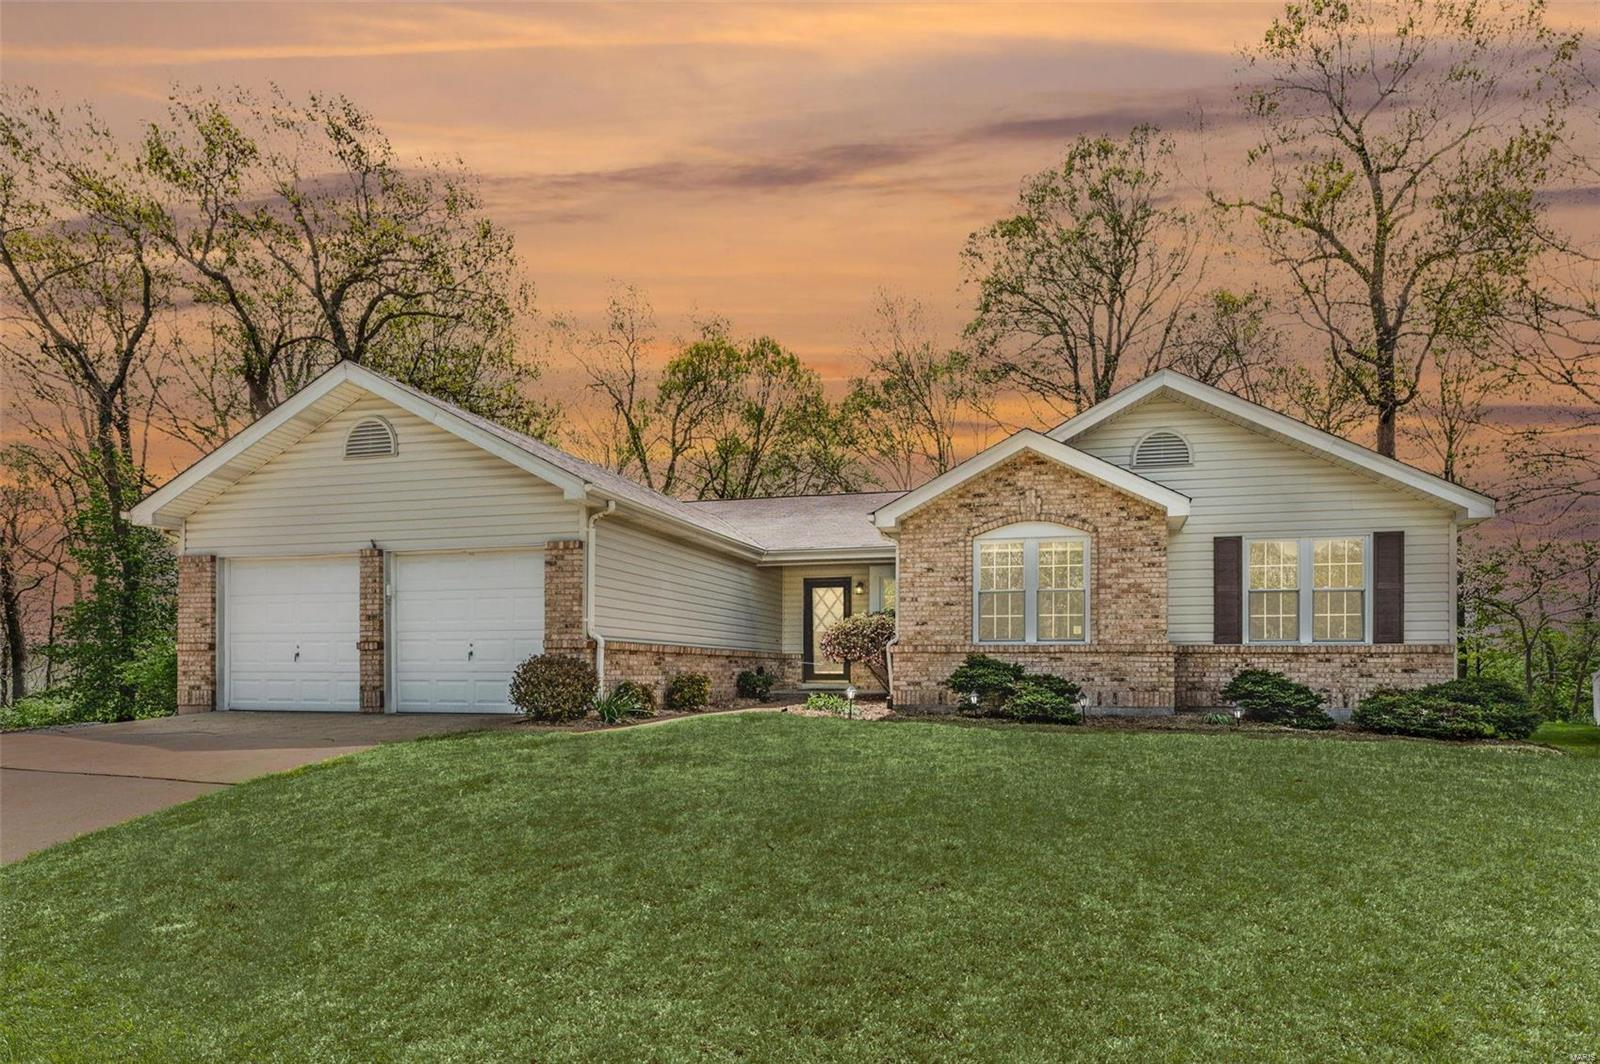 708 Sugar Mound Court Property Photo - Manchester, MO real estate listing